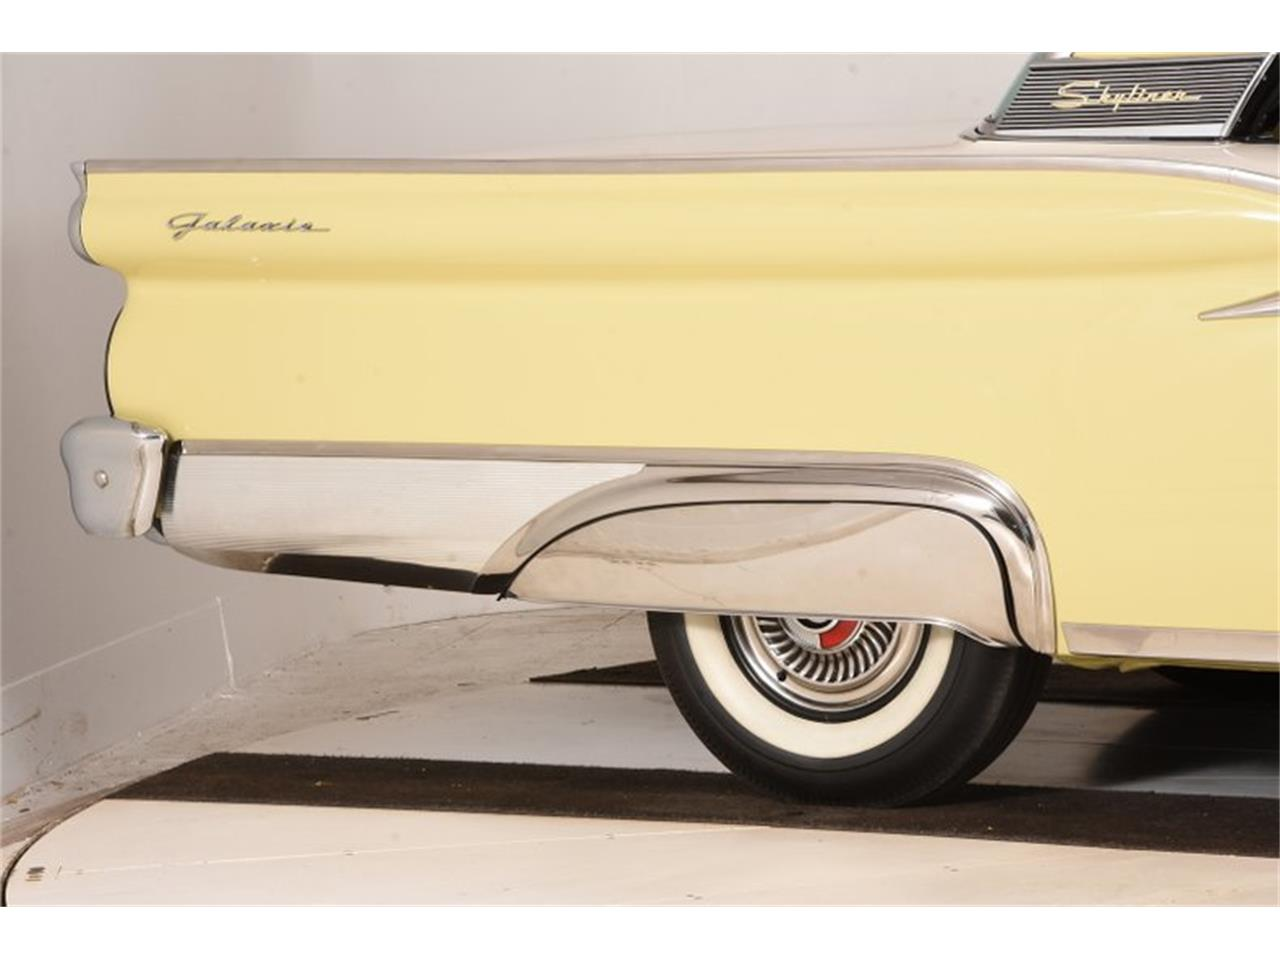 Large Picture of 1959 Ford Fairlane located in Volo Illinois - $42,998.00 Offered by Volo Auto Museum - OTK2